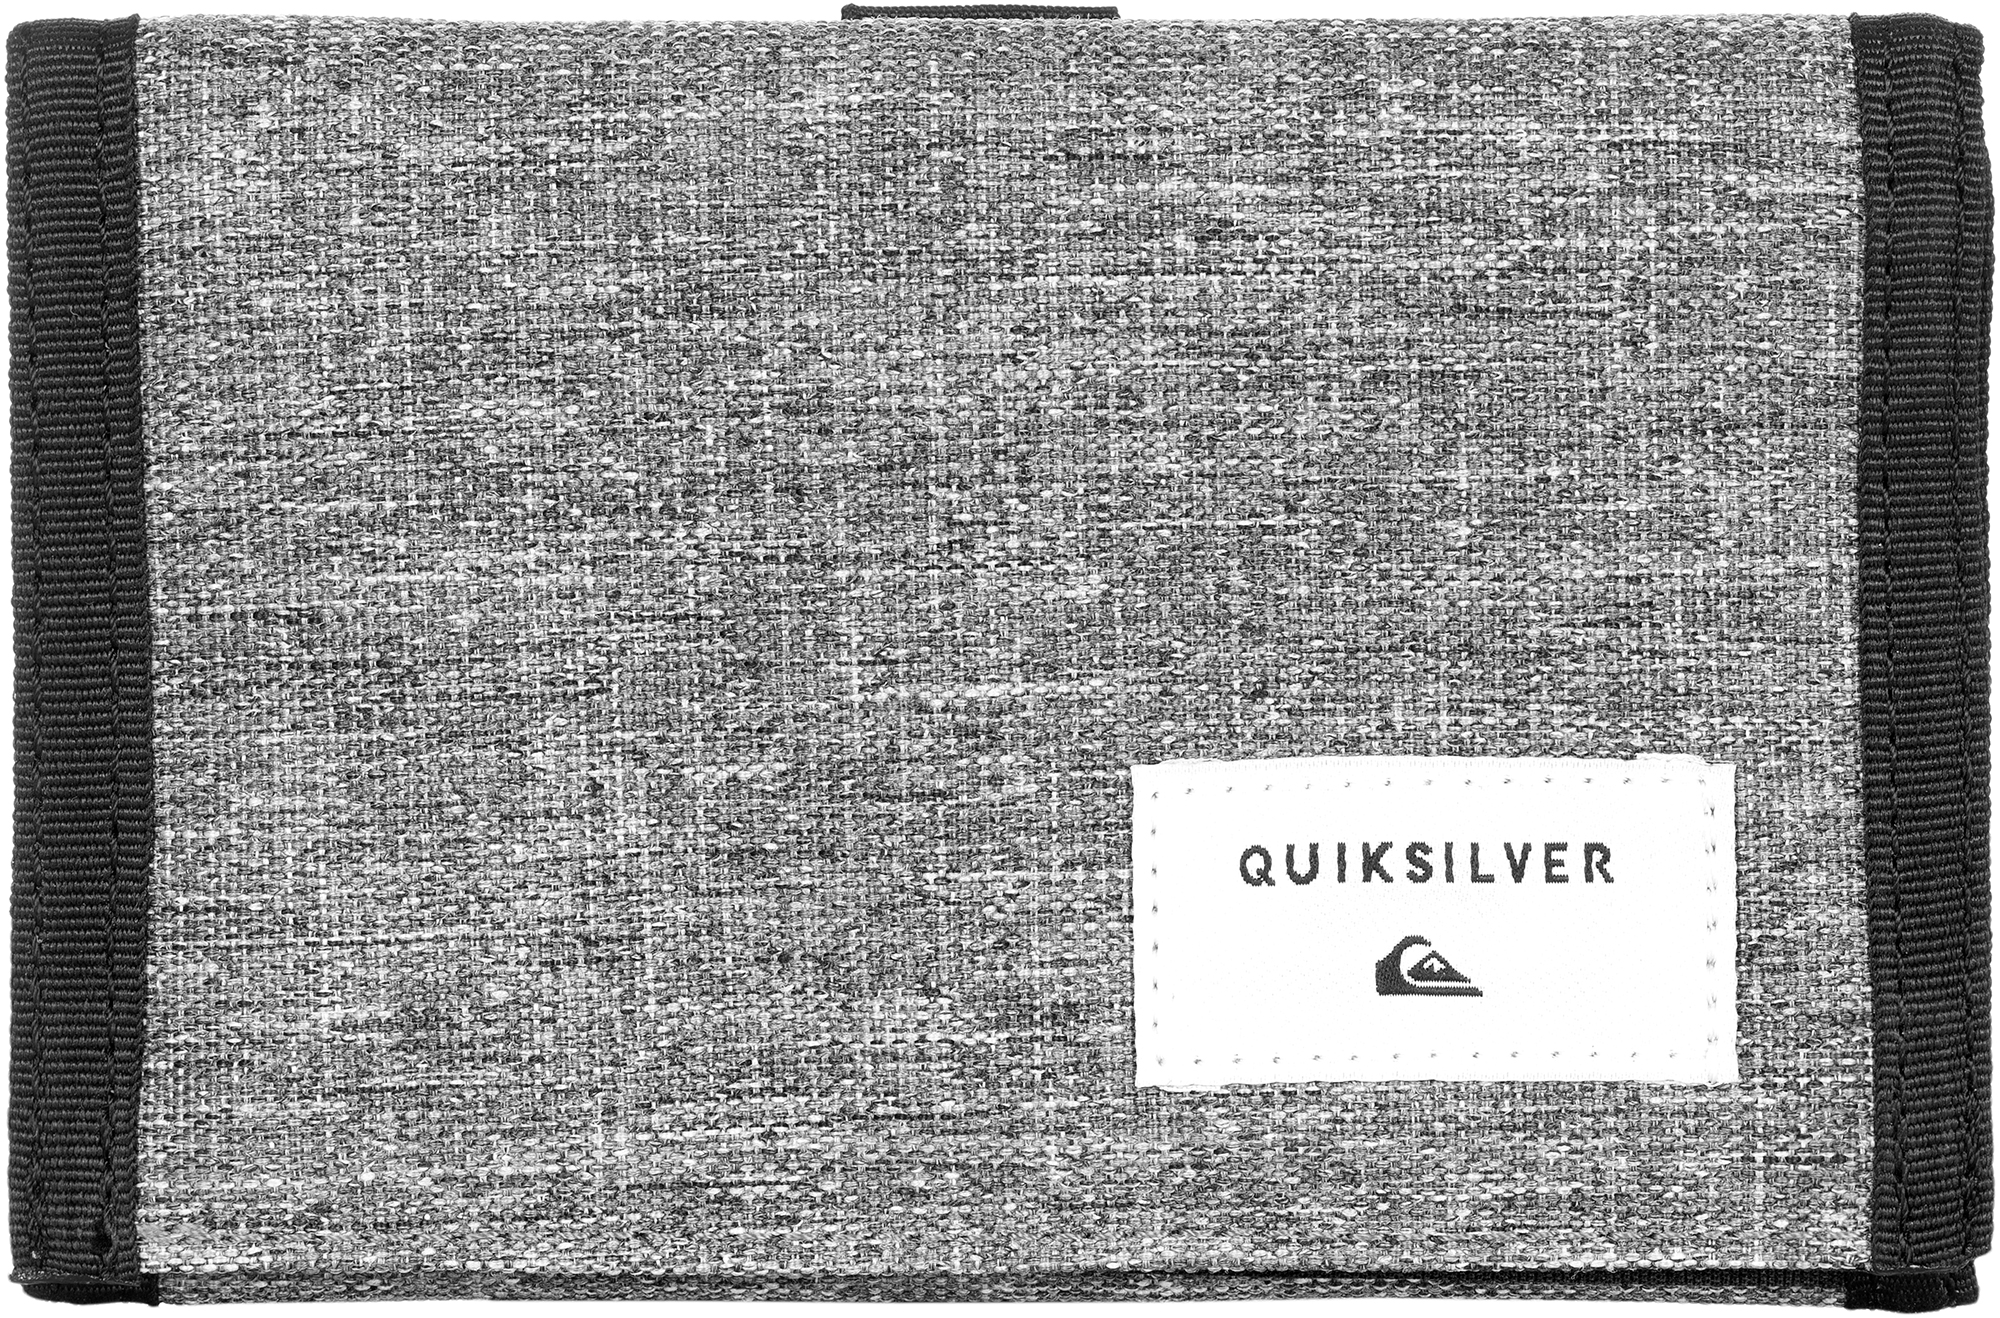 Quiksilver Кошелек Quiksilver Delect hot sale 2 5 10x40 riflescope illuminated tactical riflescope with red laser scope hunting scope page 6